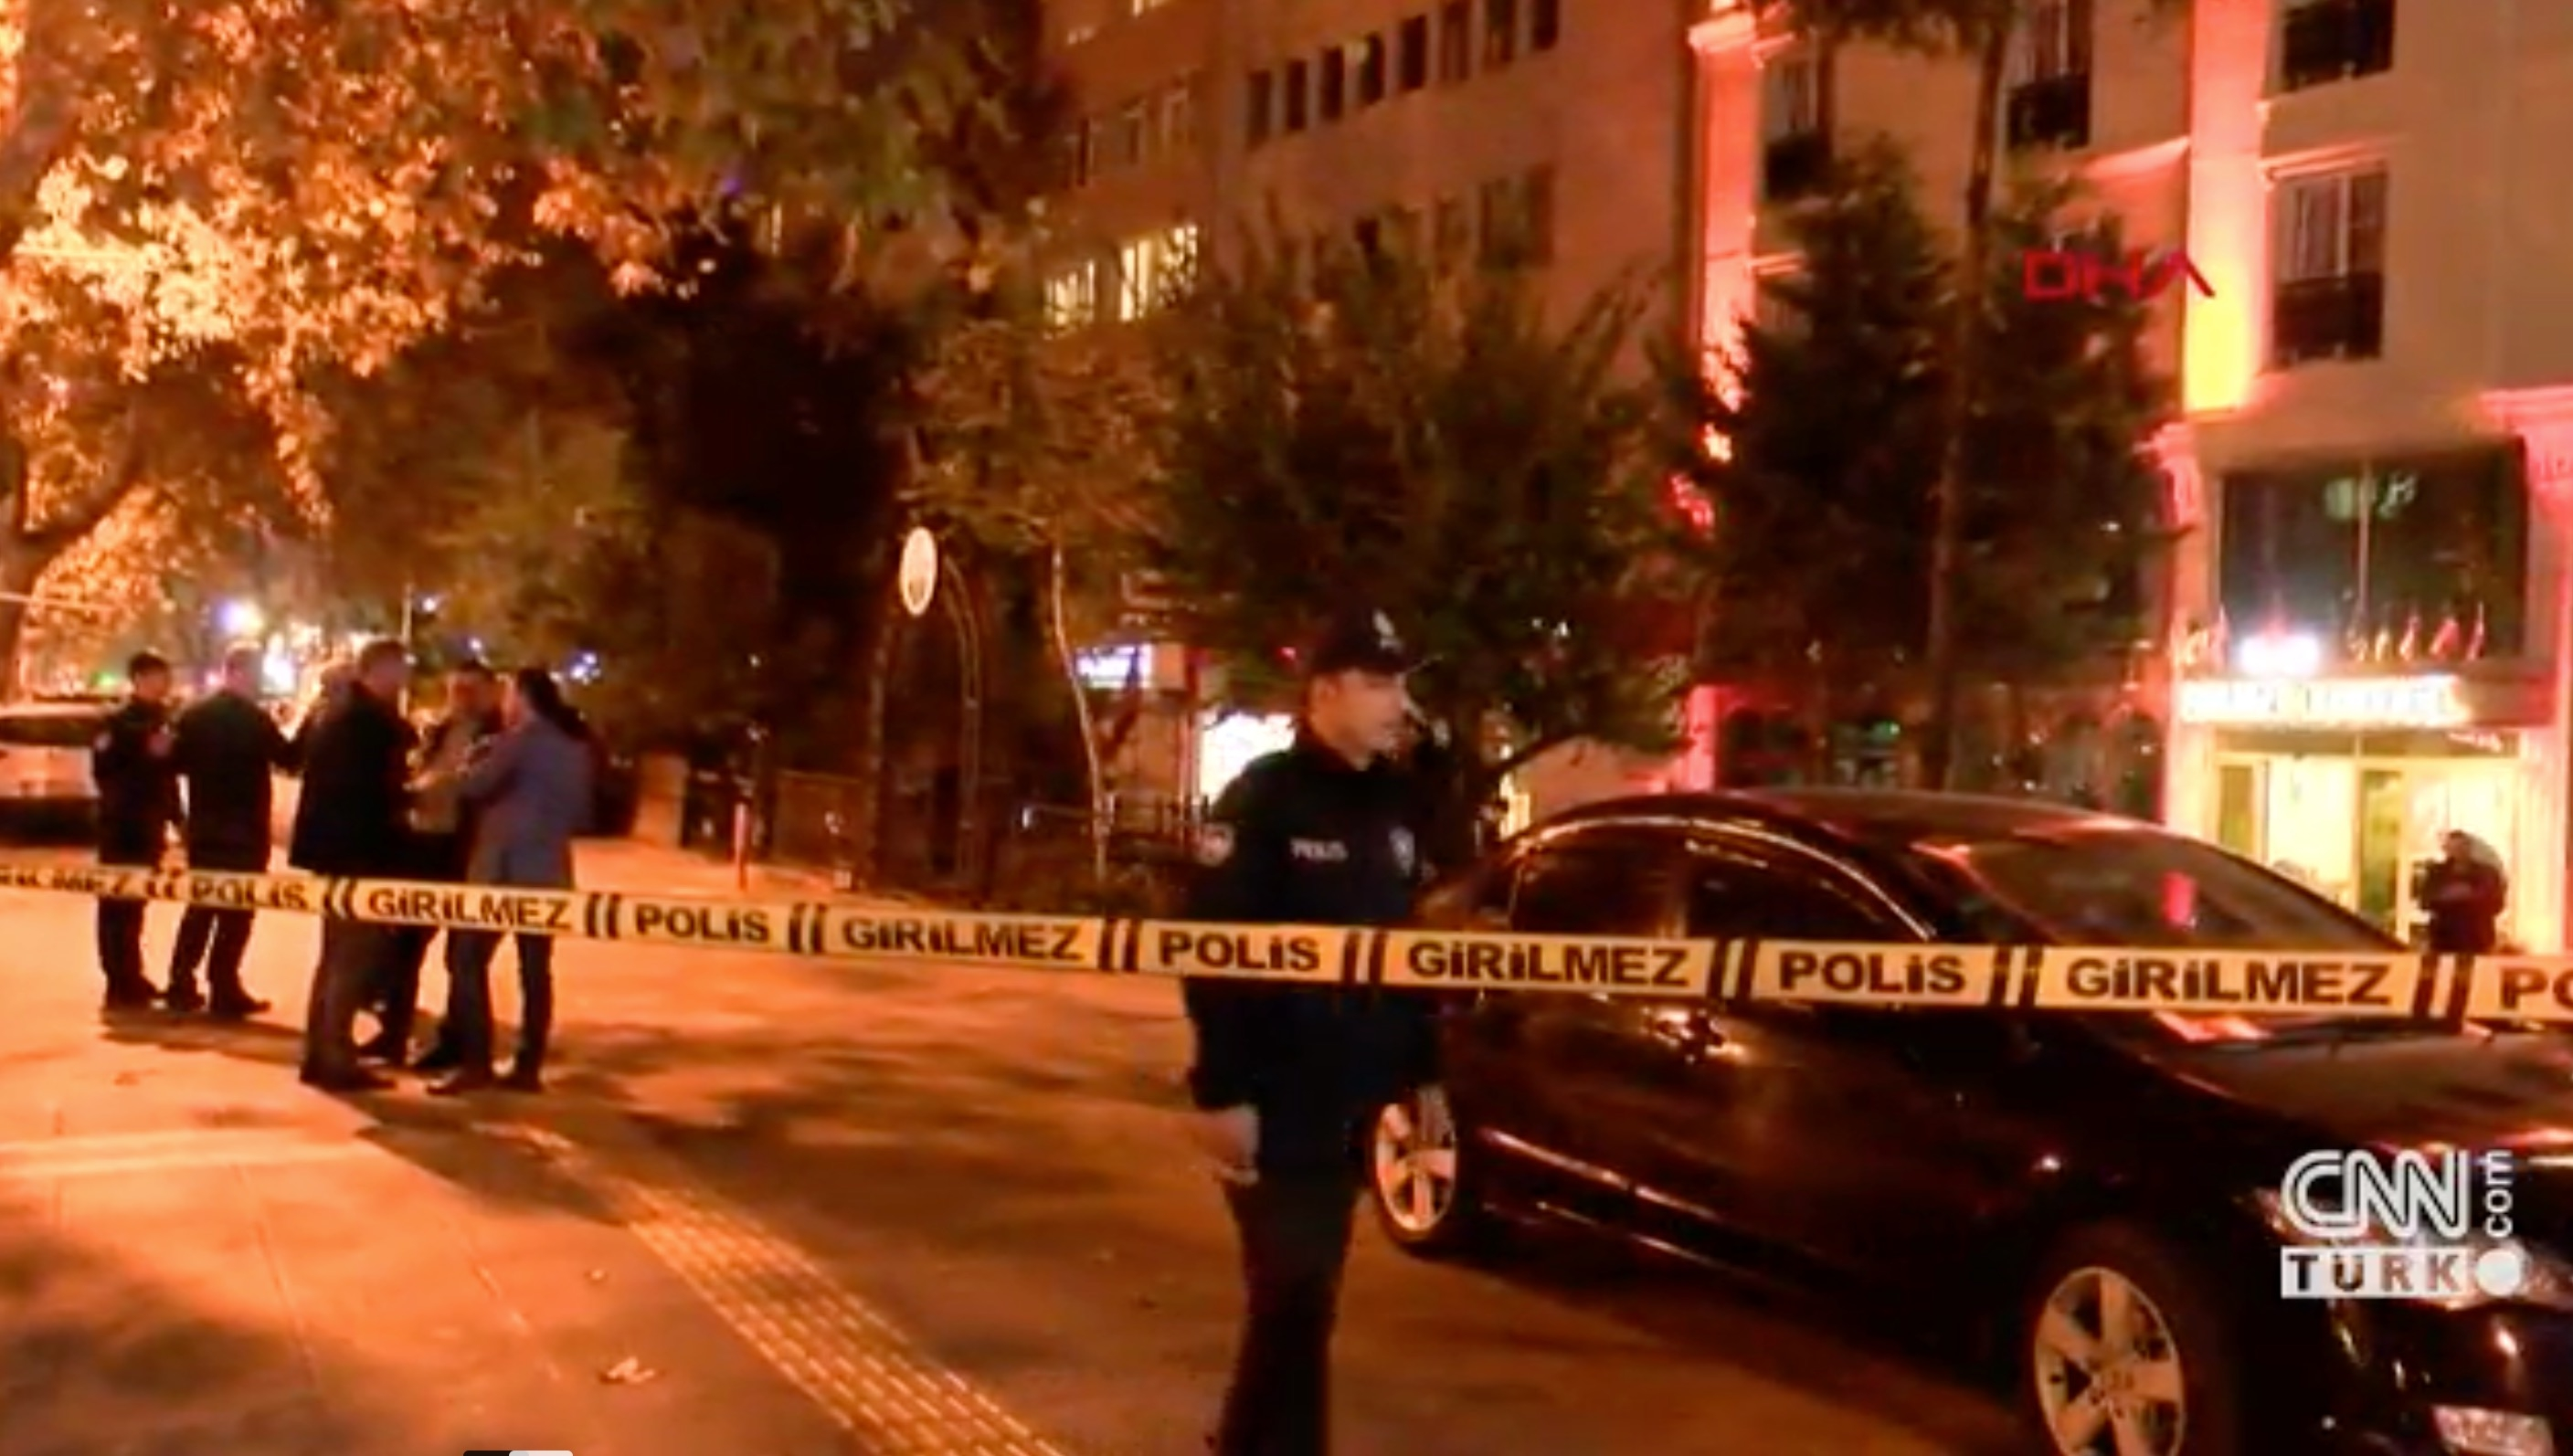 Screengrab of CNN Turk footage from the scene of the shooting.